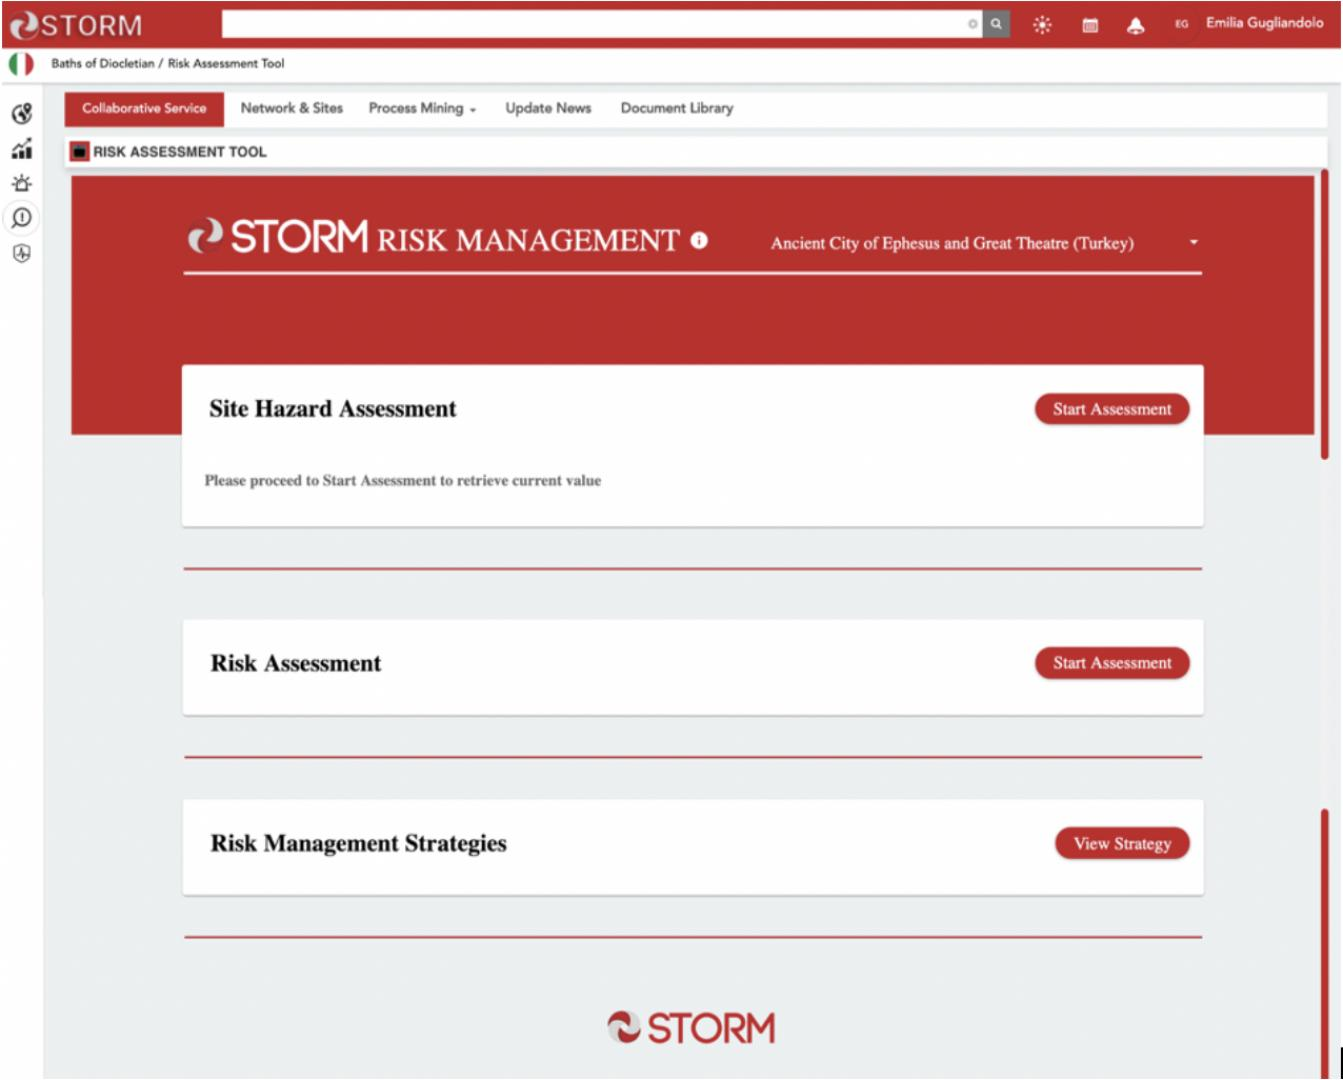 The Risk Management Dashboard allows to perform Site Hazard Assessment, Risk Assessment and display the Risk Management Strategies